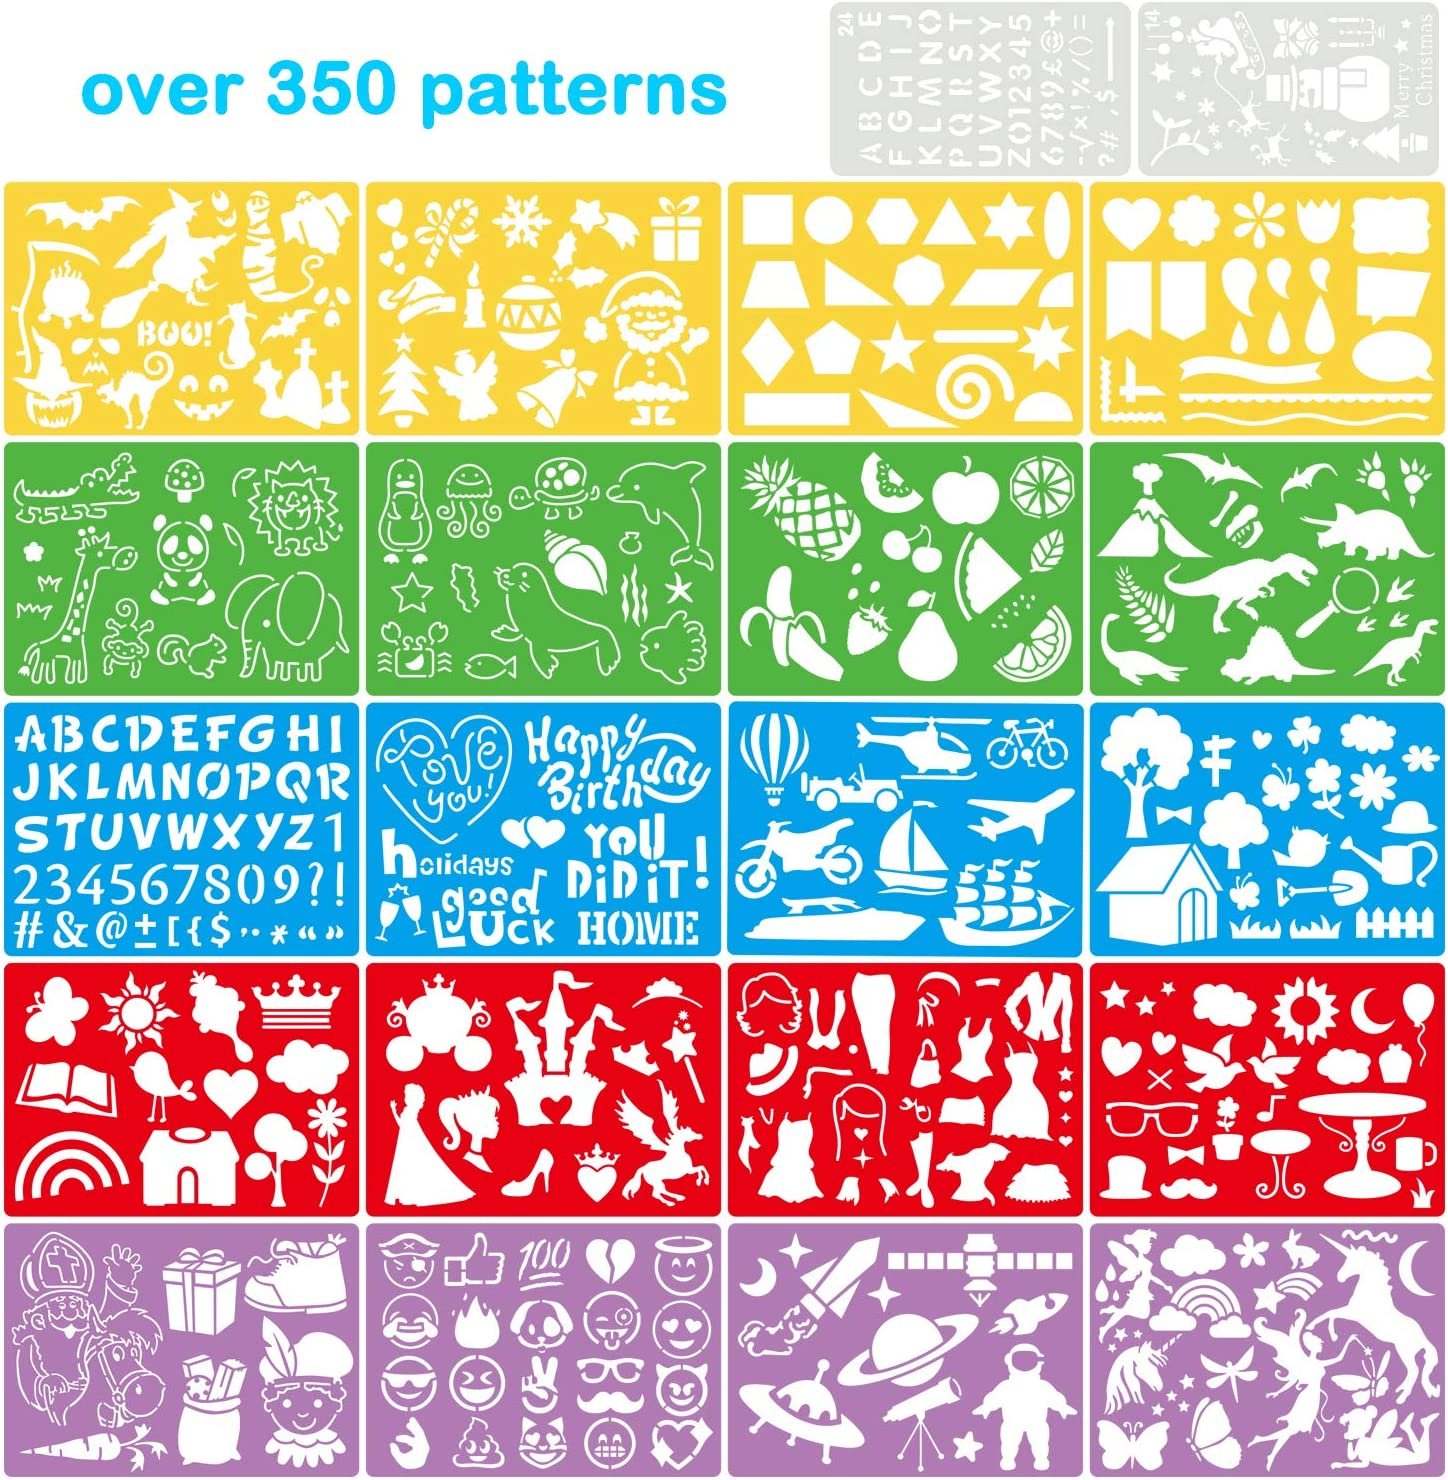 Over 350 Different Patterns six Colors of Template for Kids Gift,Washable 22 Pcs Drawing Painting Stencils for Kids